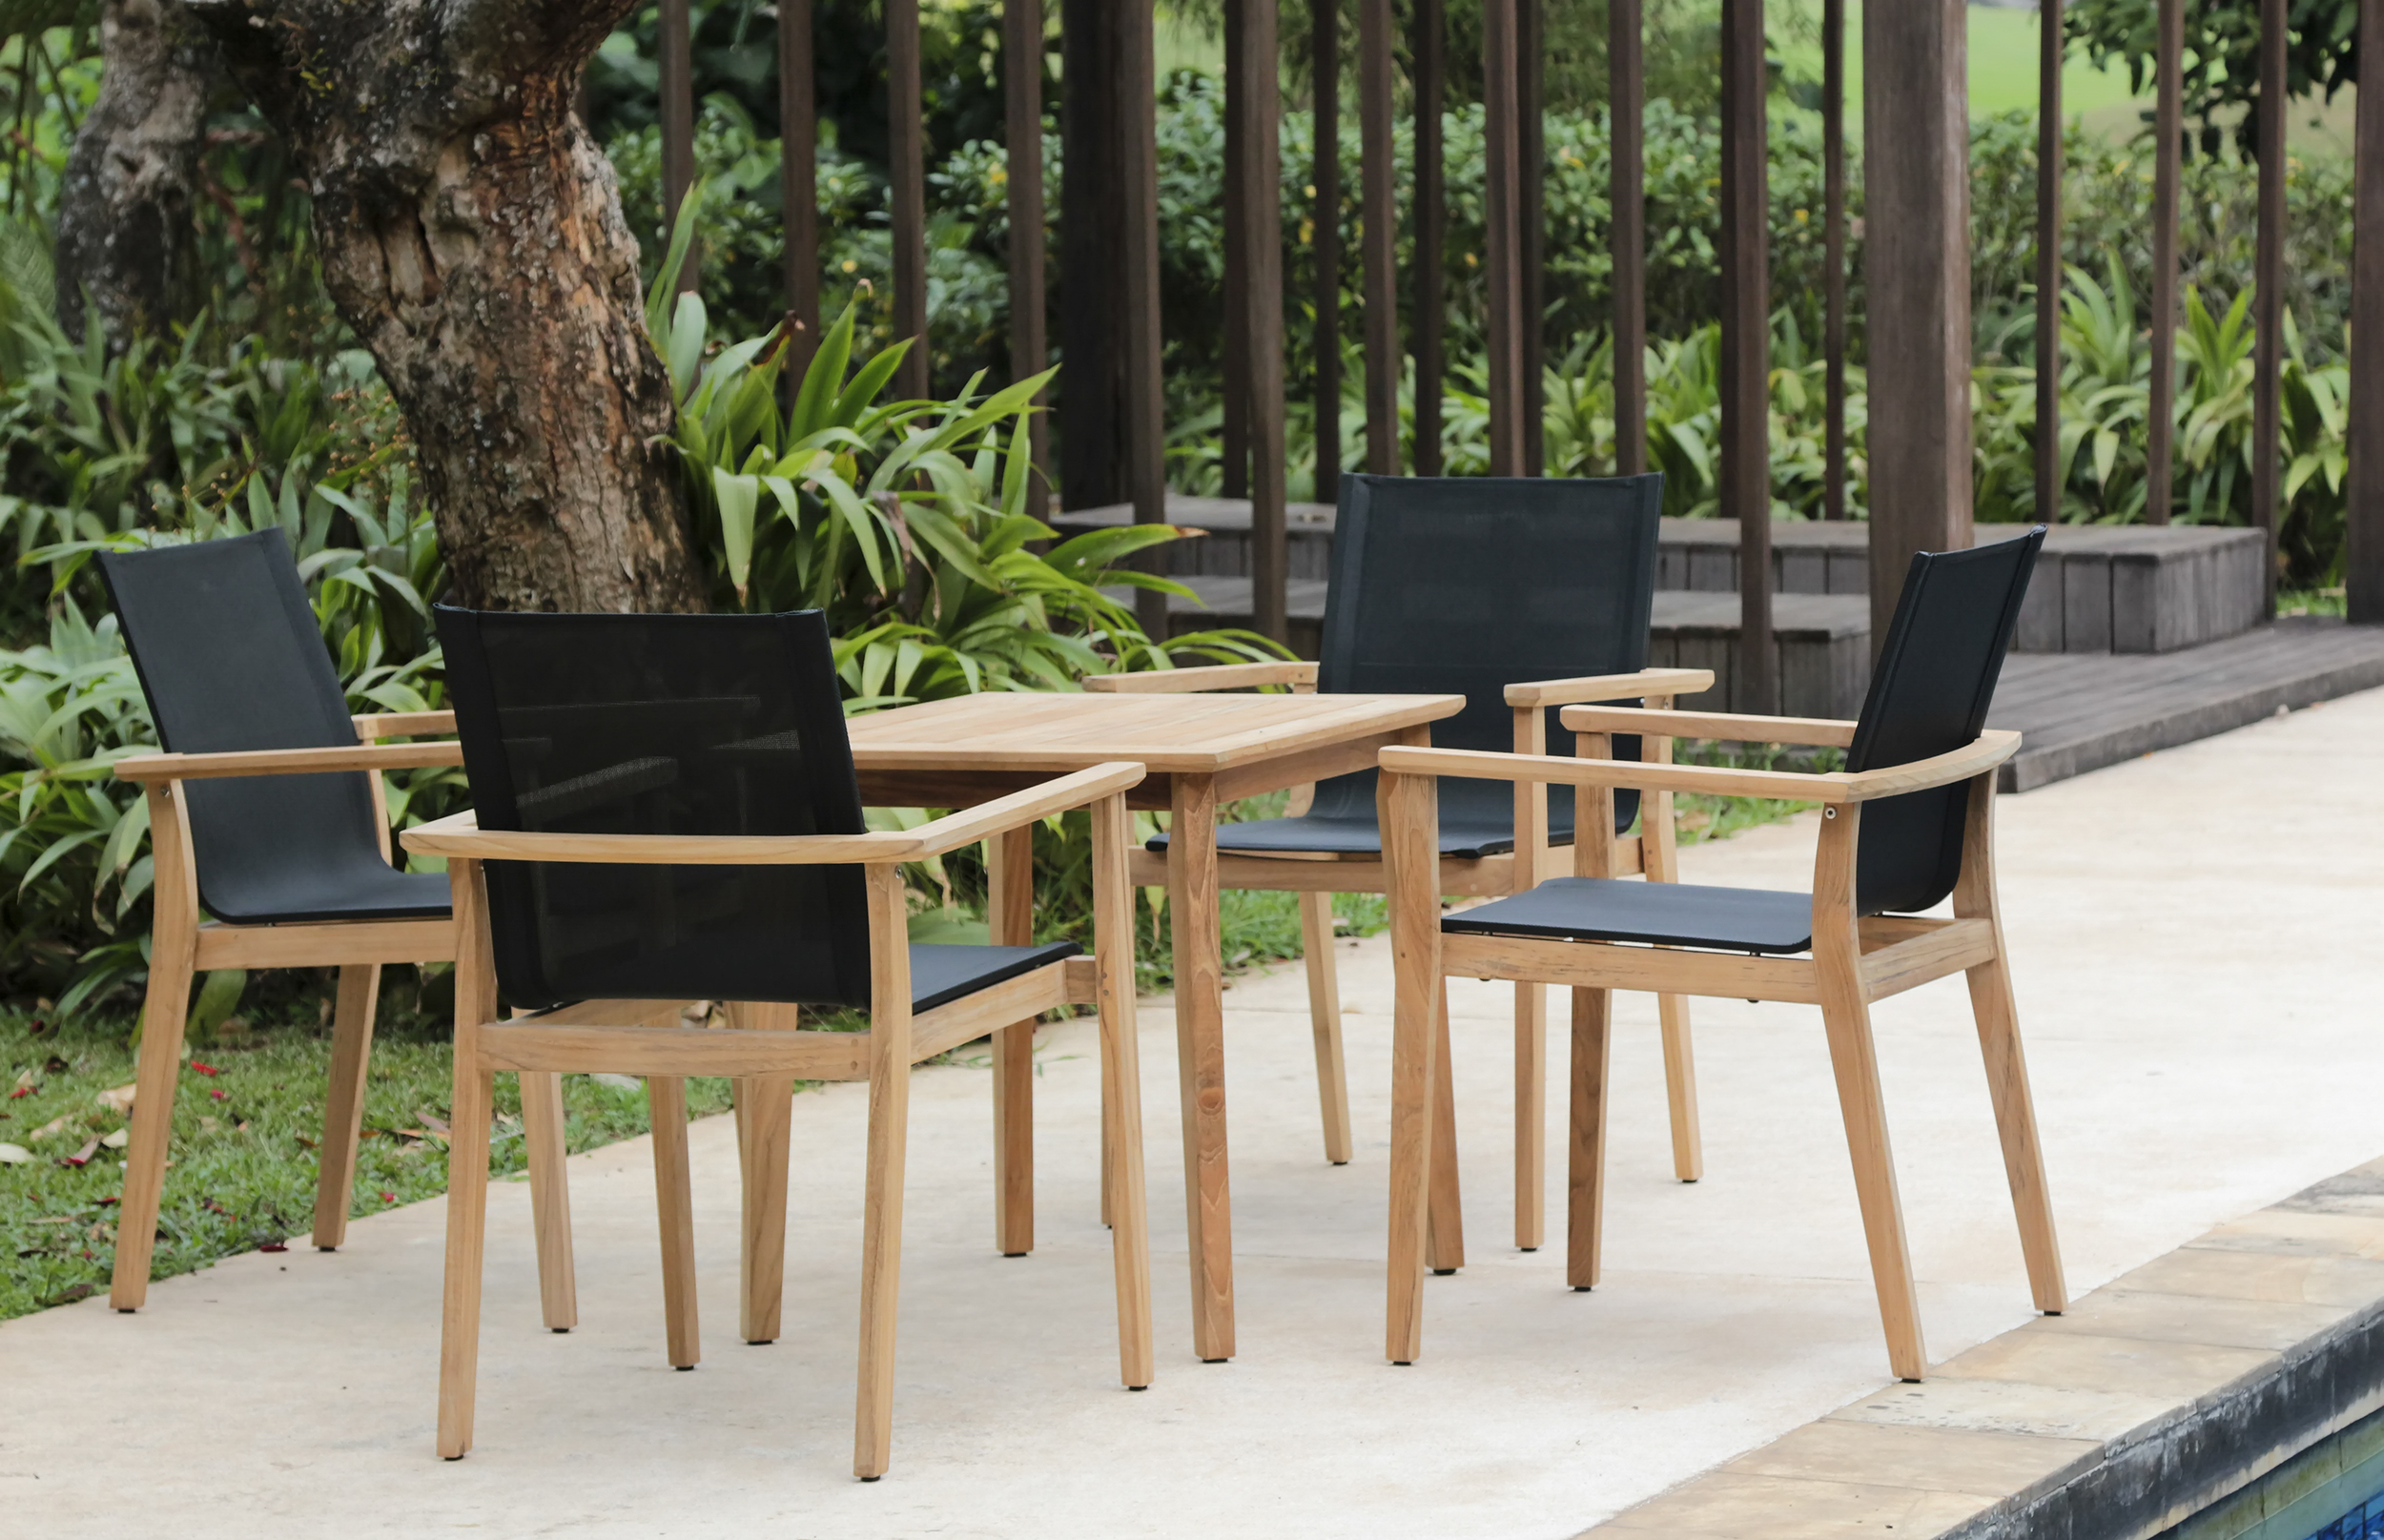 MAYA - Designed by the Danish designer Povl Eskildsen